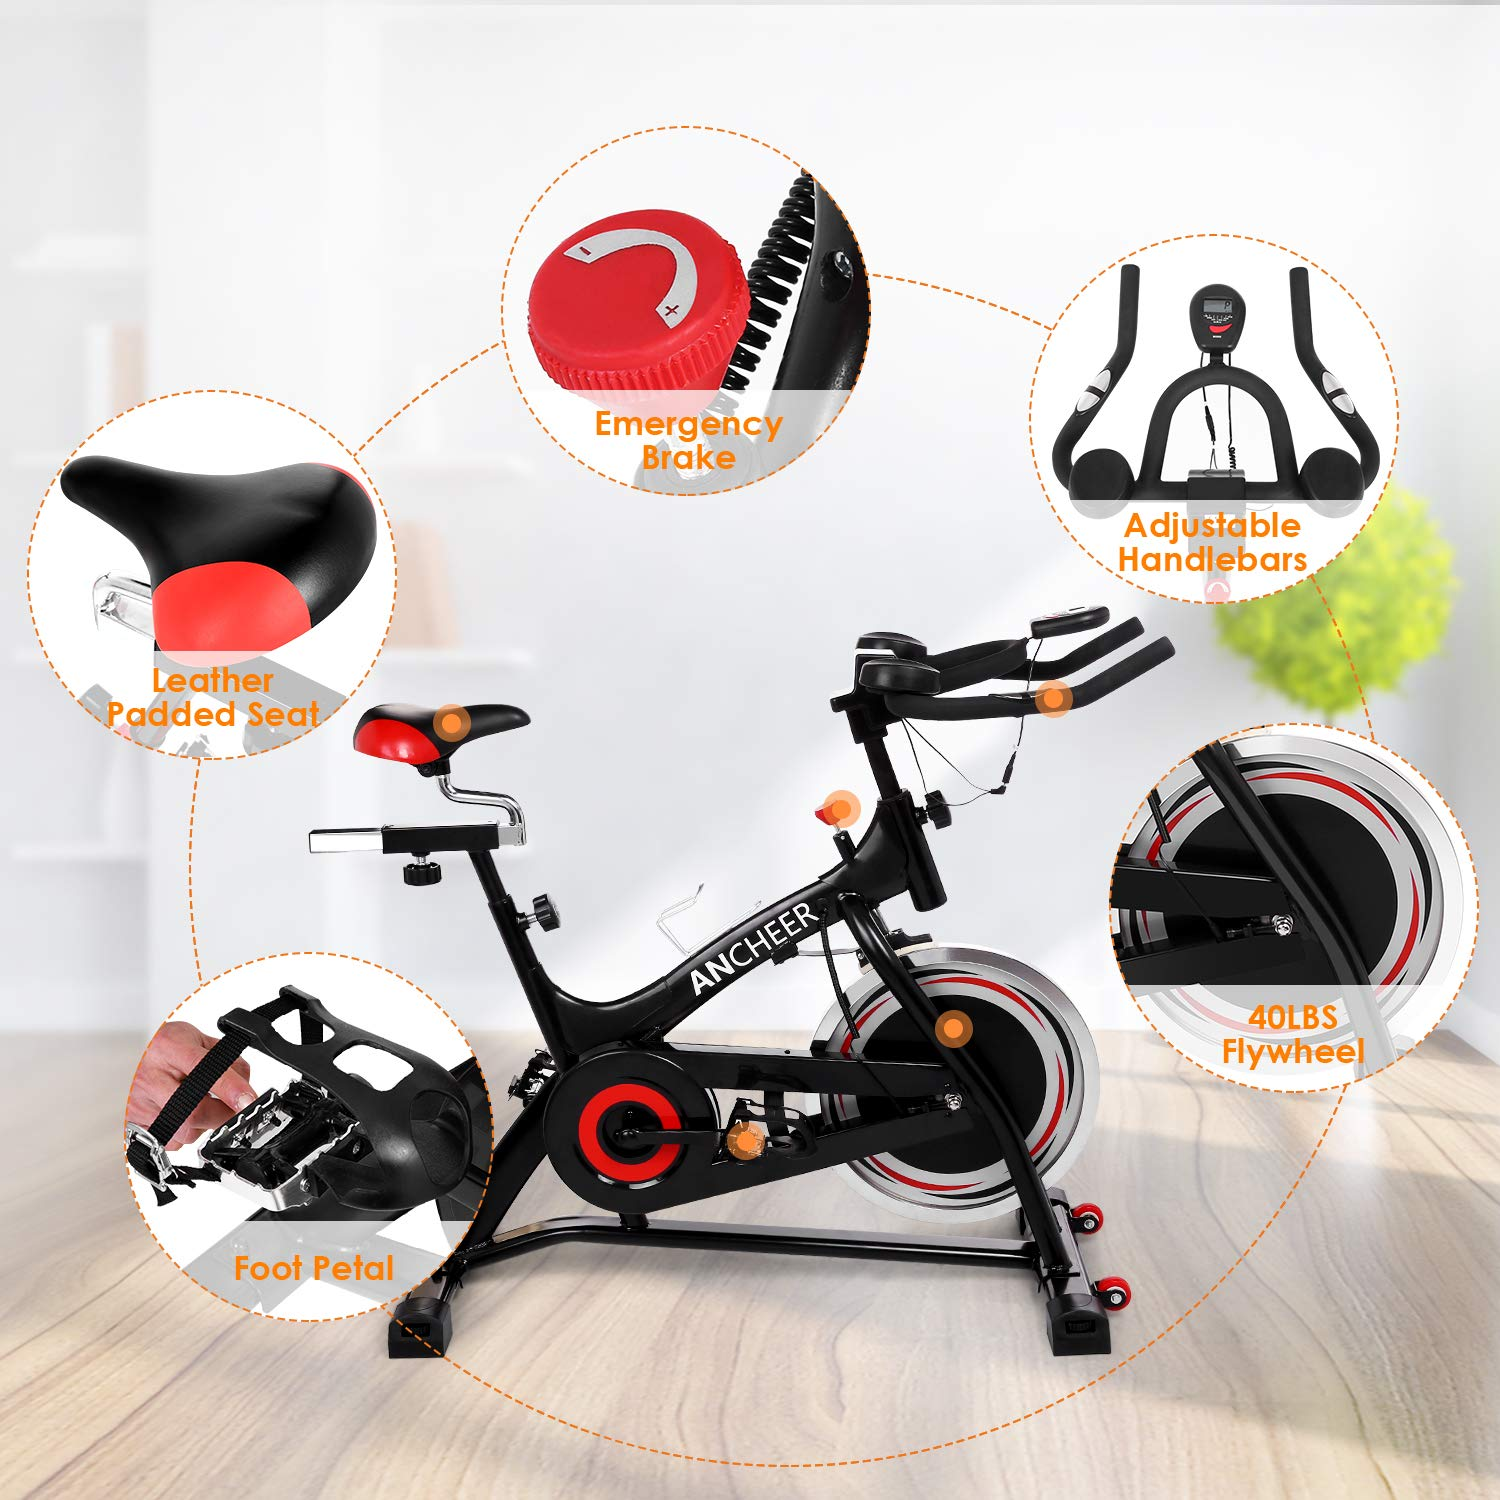 ANCHEER Stationary Bike, 40 LBS Flywheel Belt Drive Indoor Cycling Exercise Bike with Pulse, Elbow Tray (Model: ANCHEER-A5001) (Black) by ANCHEER (Image #8)